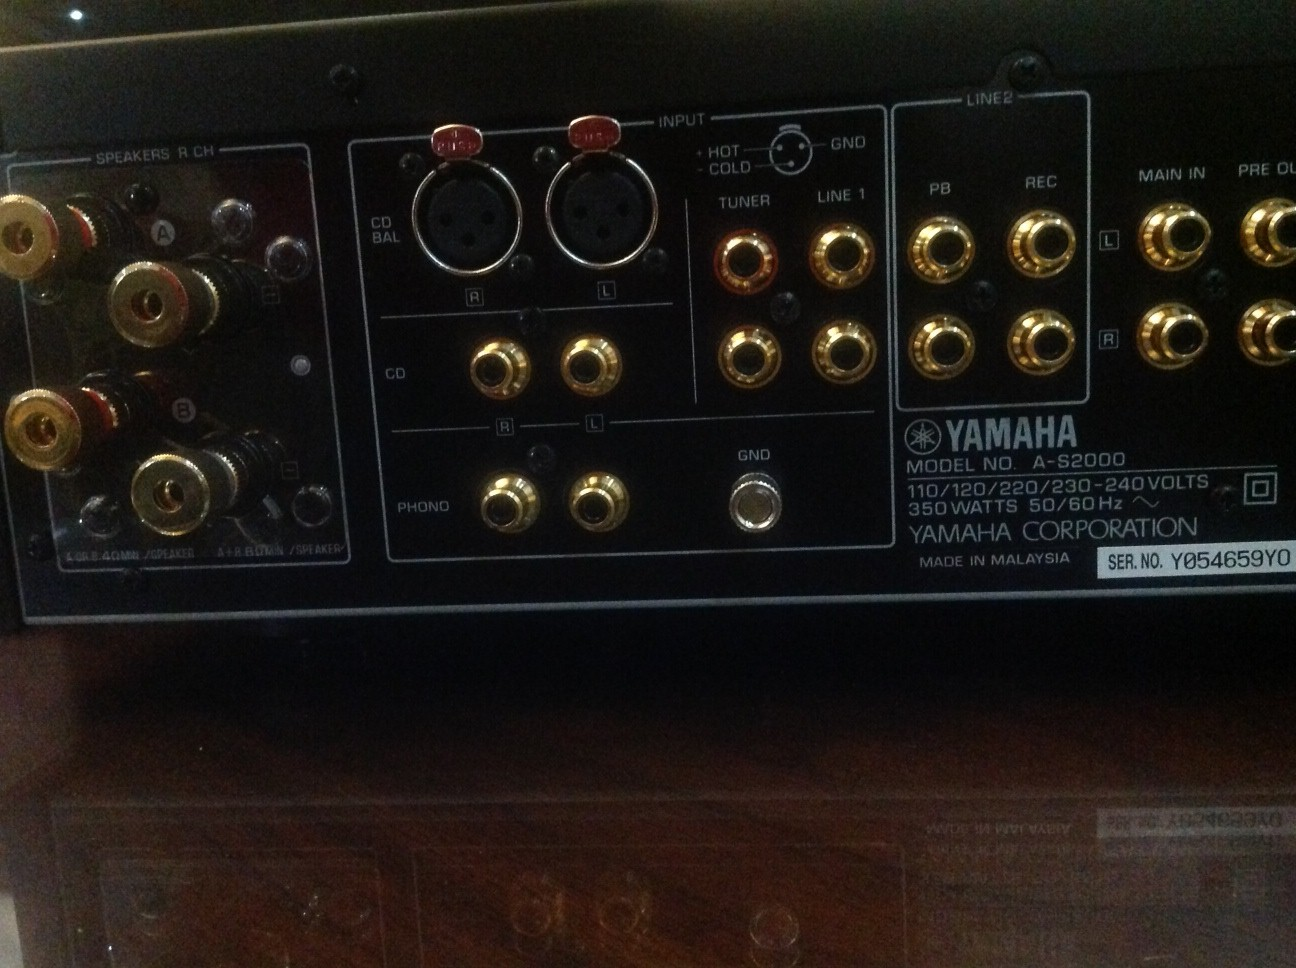 Problem With YAMAHA A-S2000 Amplifier | AVForums